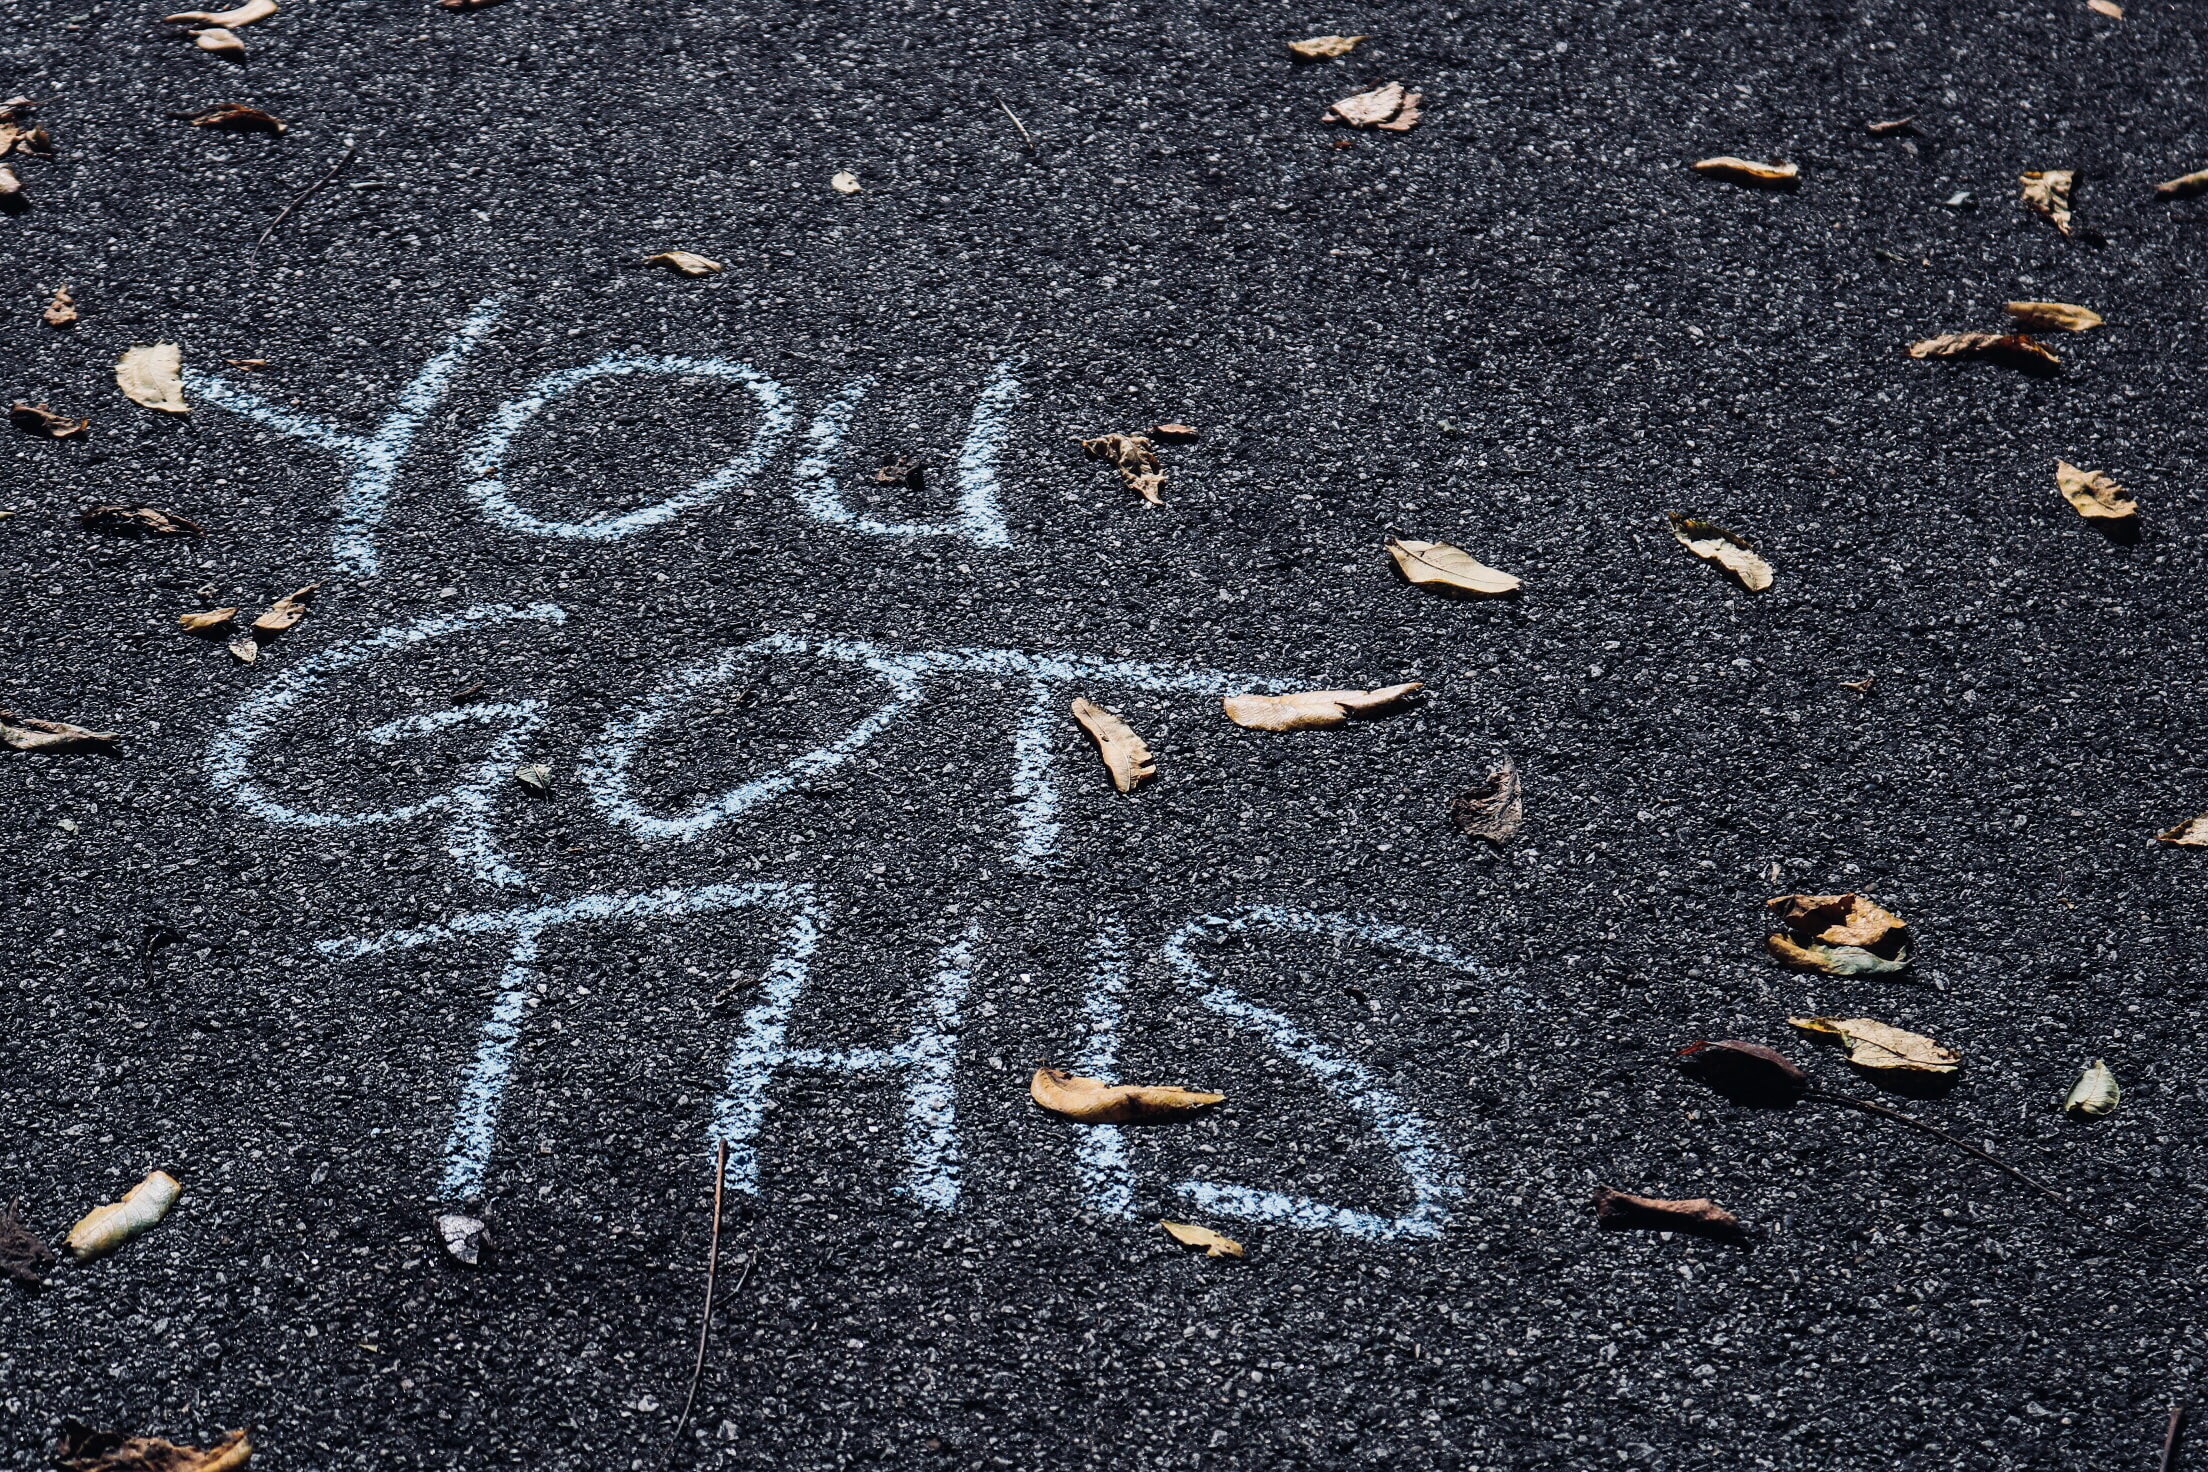 Dealing with Bored Kids: You Got This sidewalk chalk sign